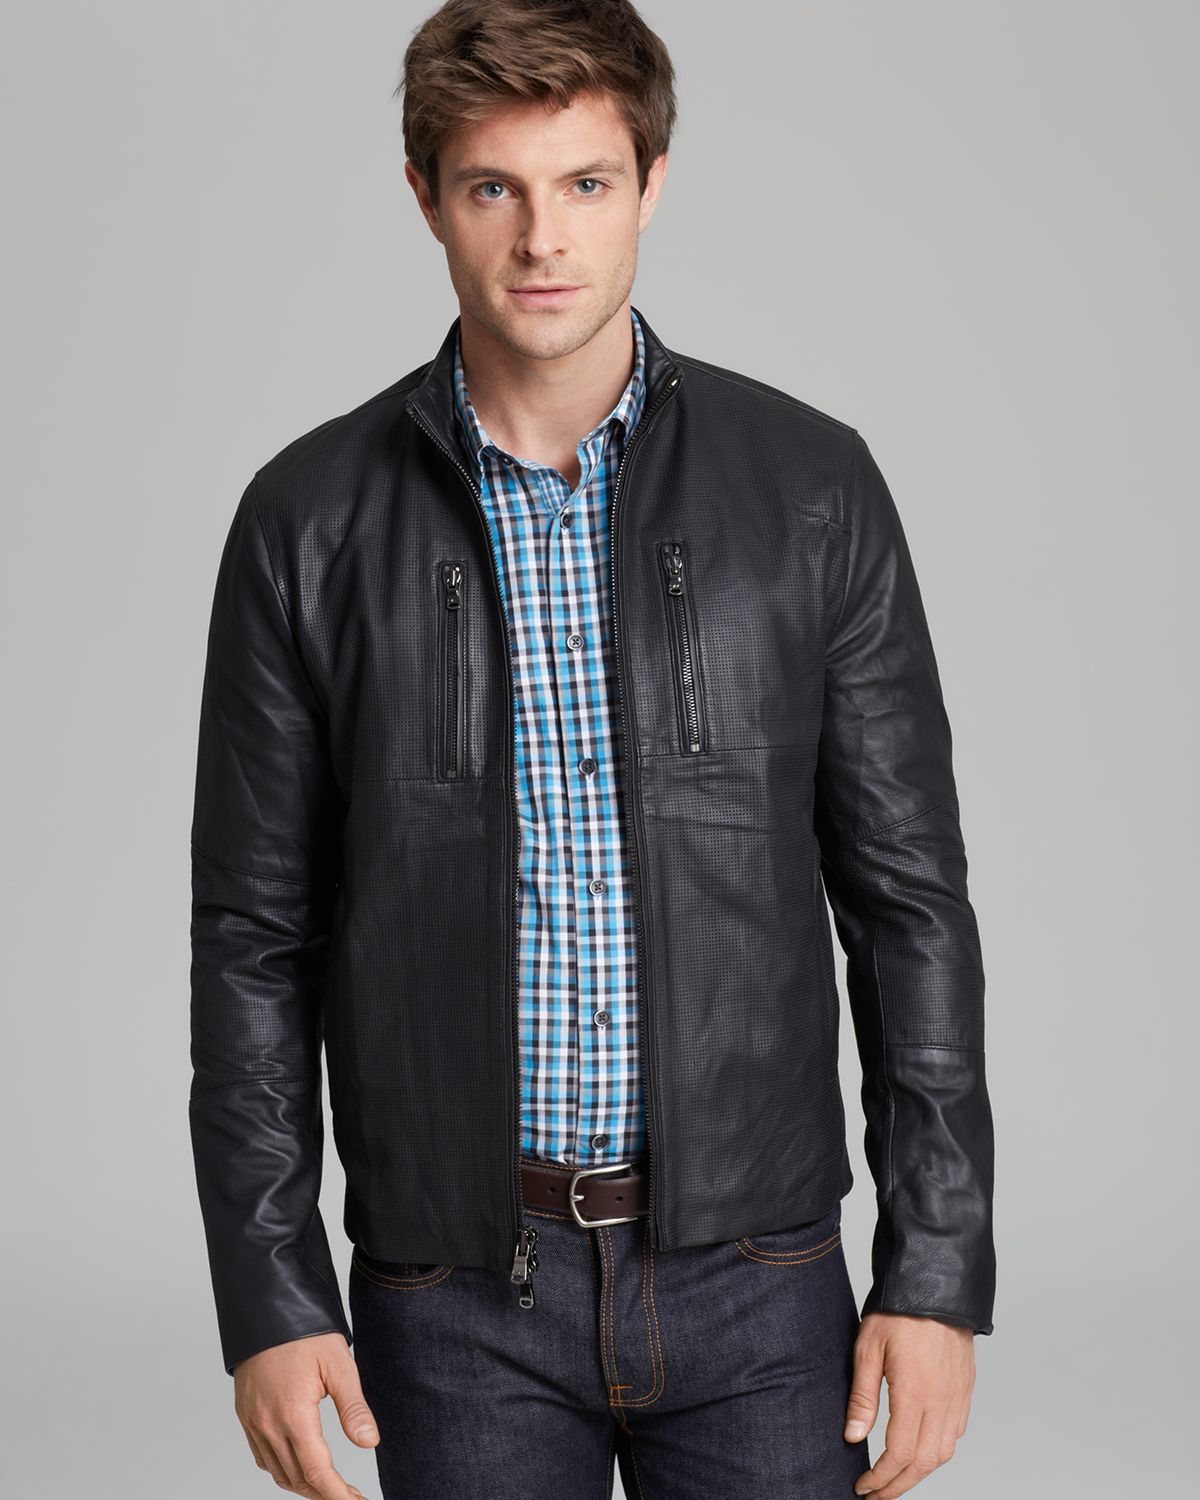 Lyst Michael Kors Perforated Leather Racer Jacket In